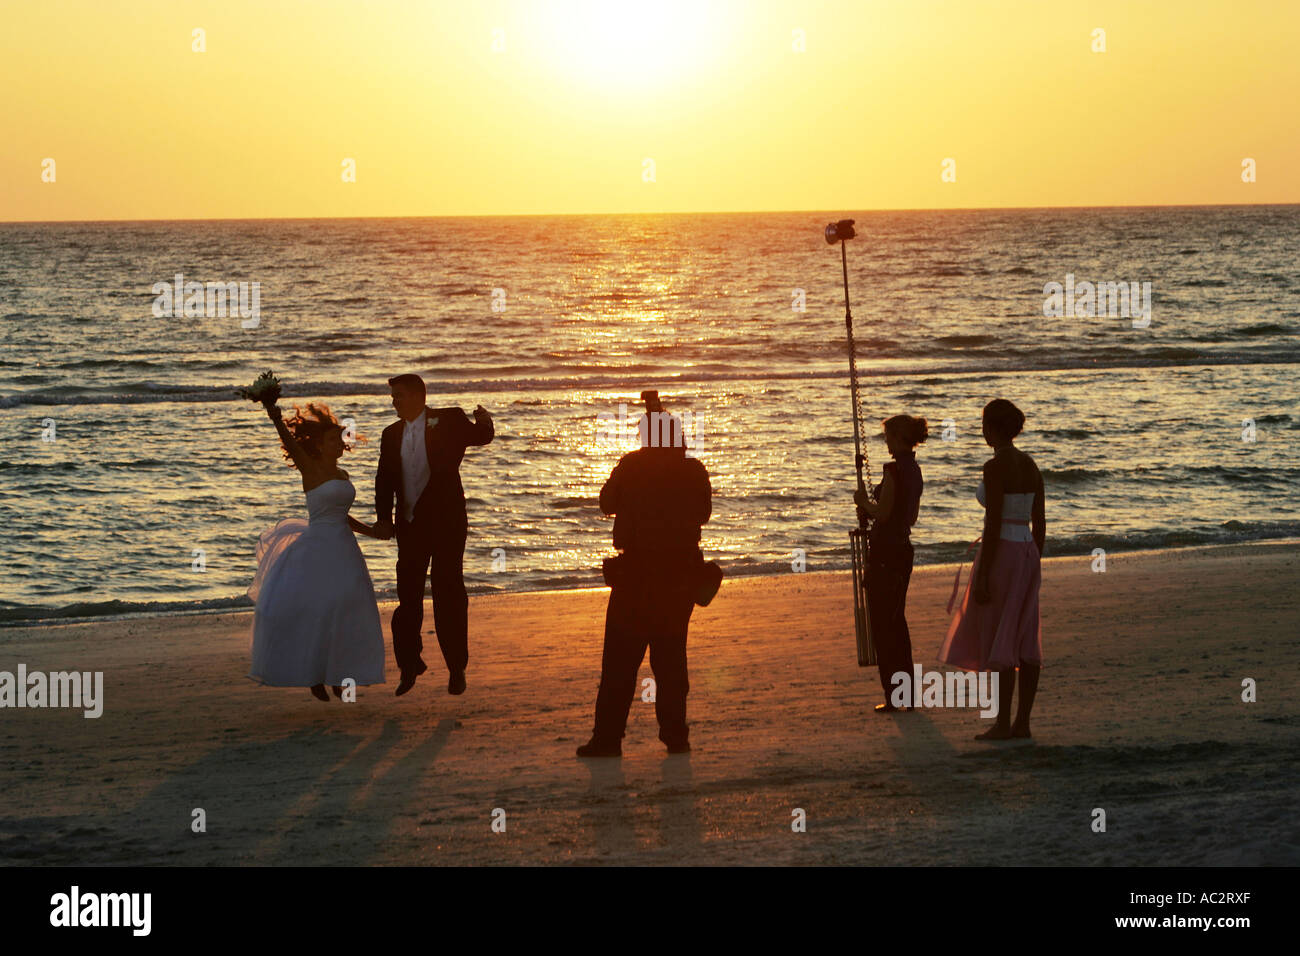 USA, United States of America, Florida, Fort Myersr Beach : Just married couple during a photoshooting at the beach at sunset - Stock Image